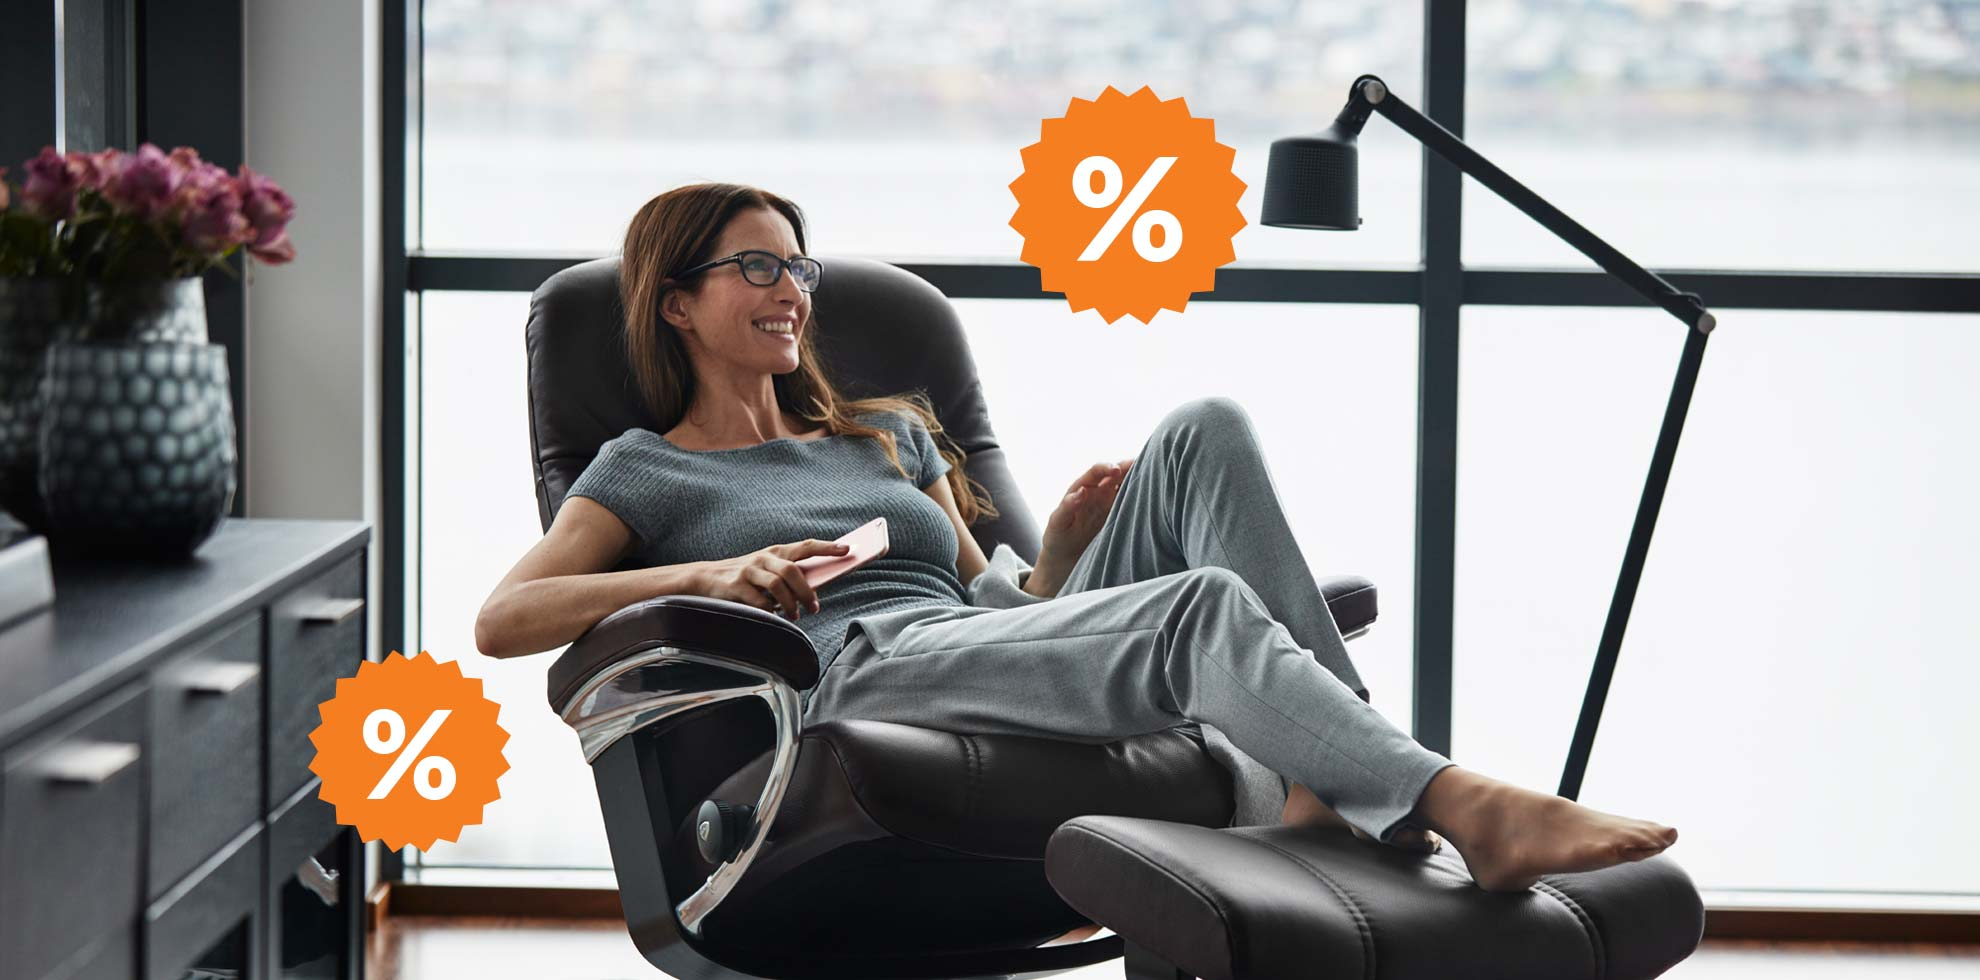 Stressless Consul Signature Sessel Stressless Consul Sessel Angebote Inklusive Lieferung Und